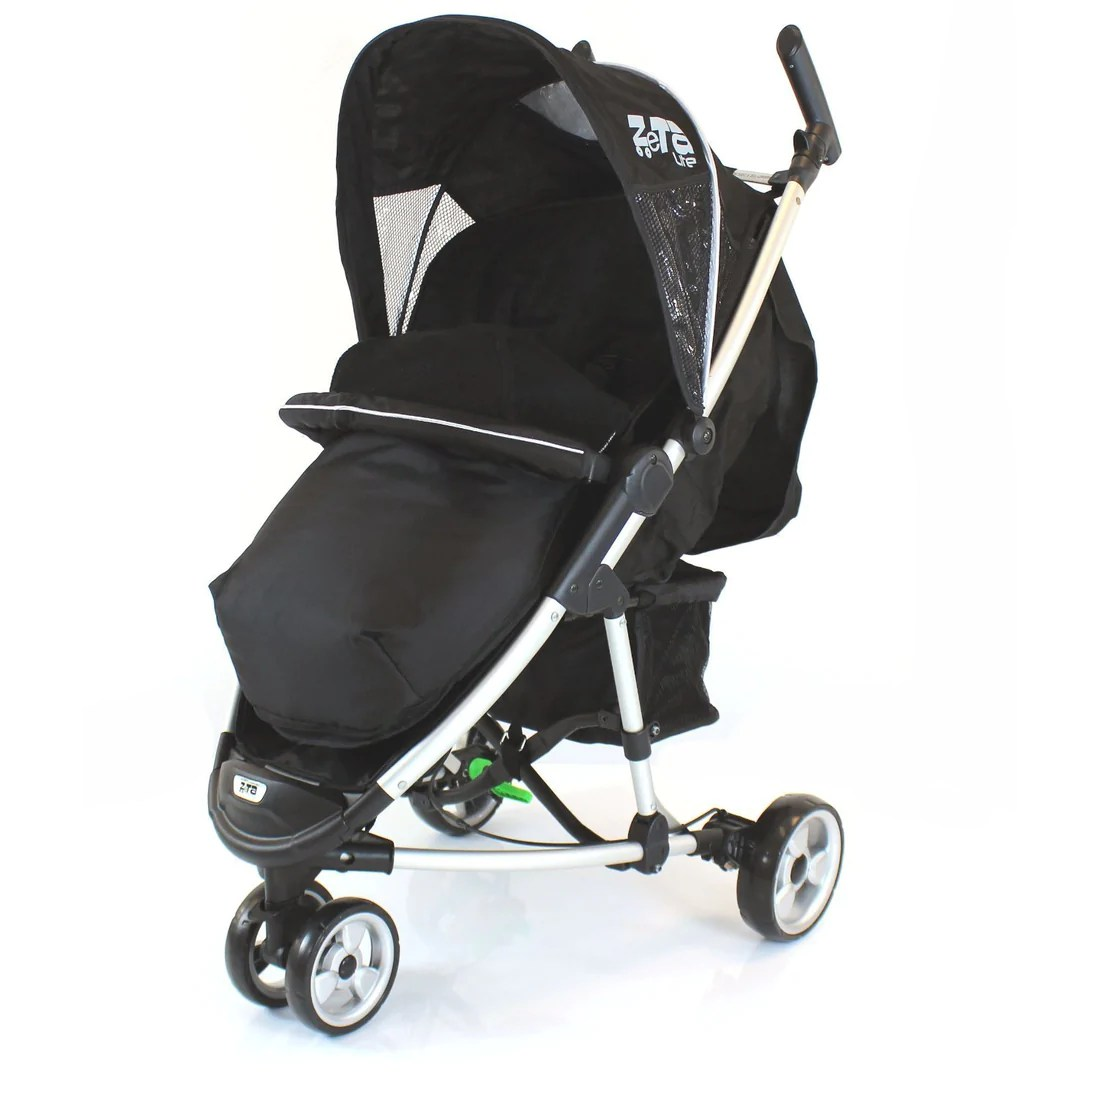 3 Wheel Prams Argos Black Footmuff With Puches Fits Baby Jogger City Mini Micro Stroller Pushchair